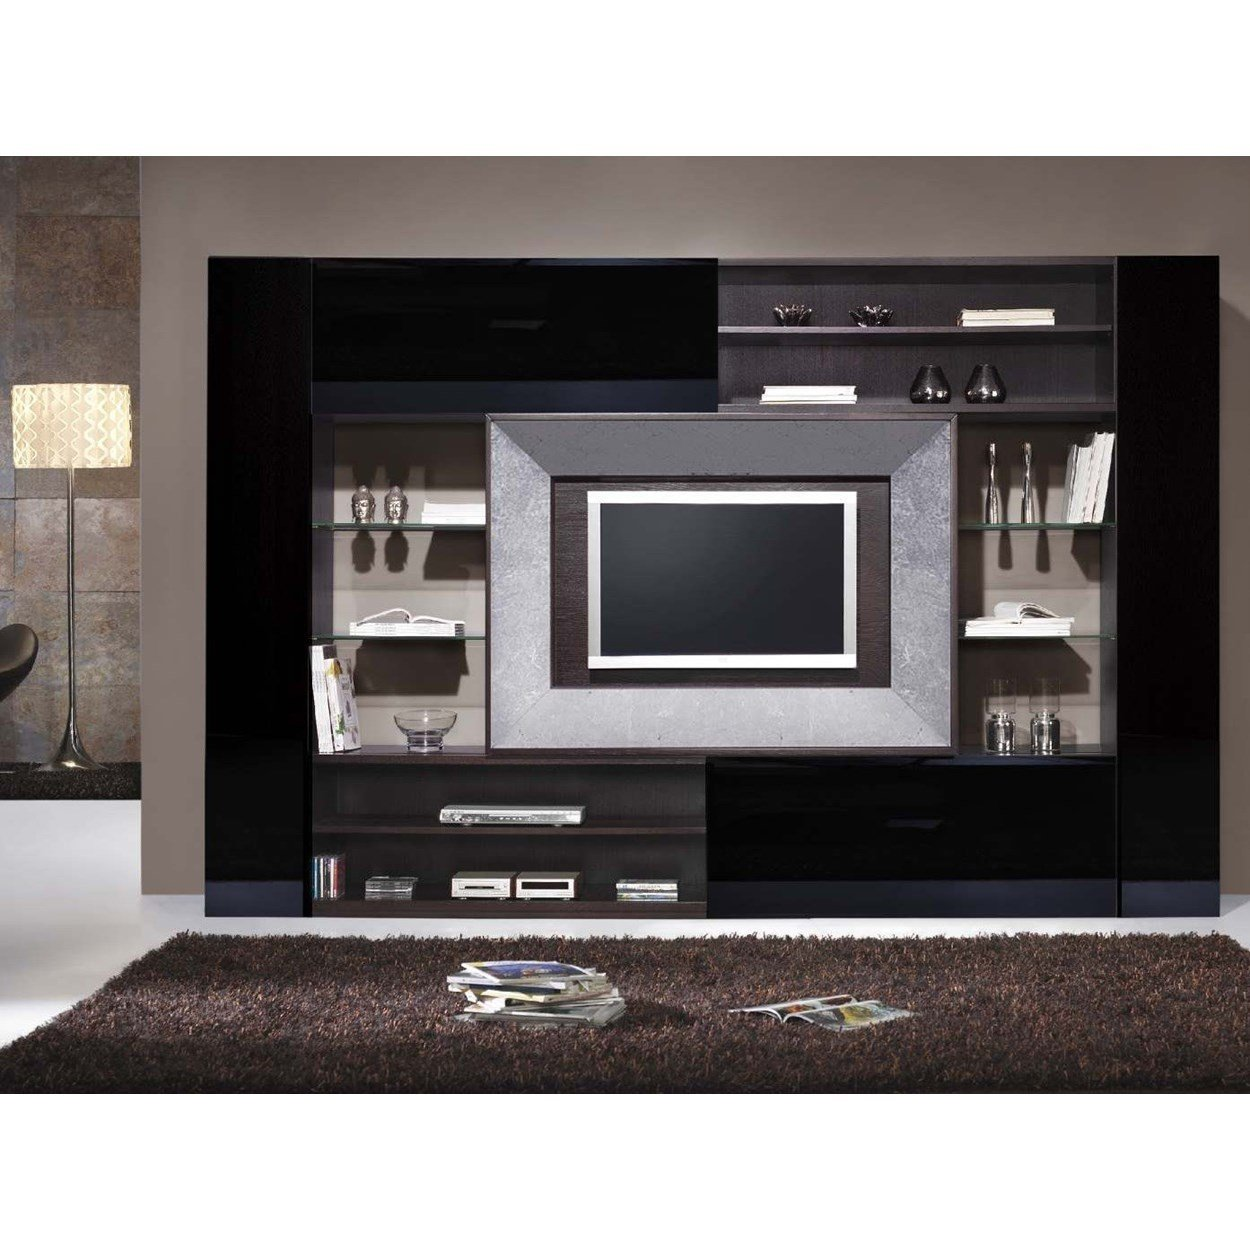 Tall Tv Stand for Bedroom Best Of Supreme Bedroom Tv Stand Designs with Along Small for High